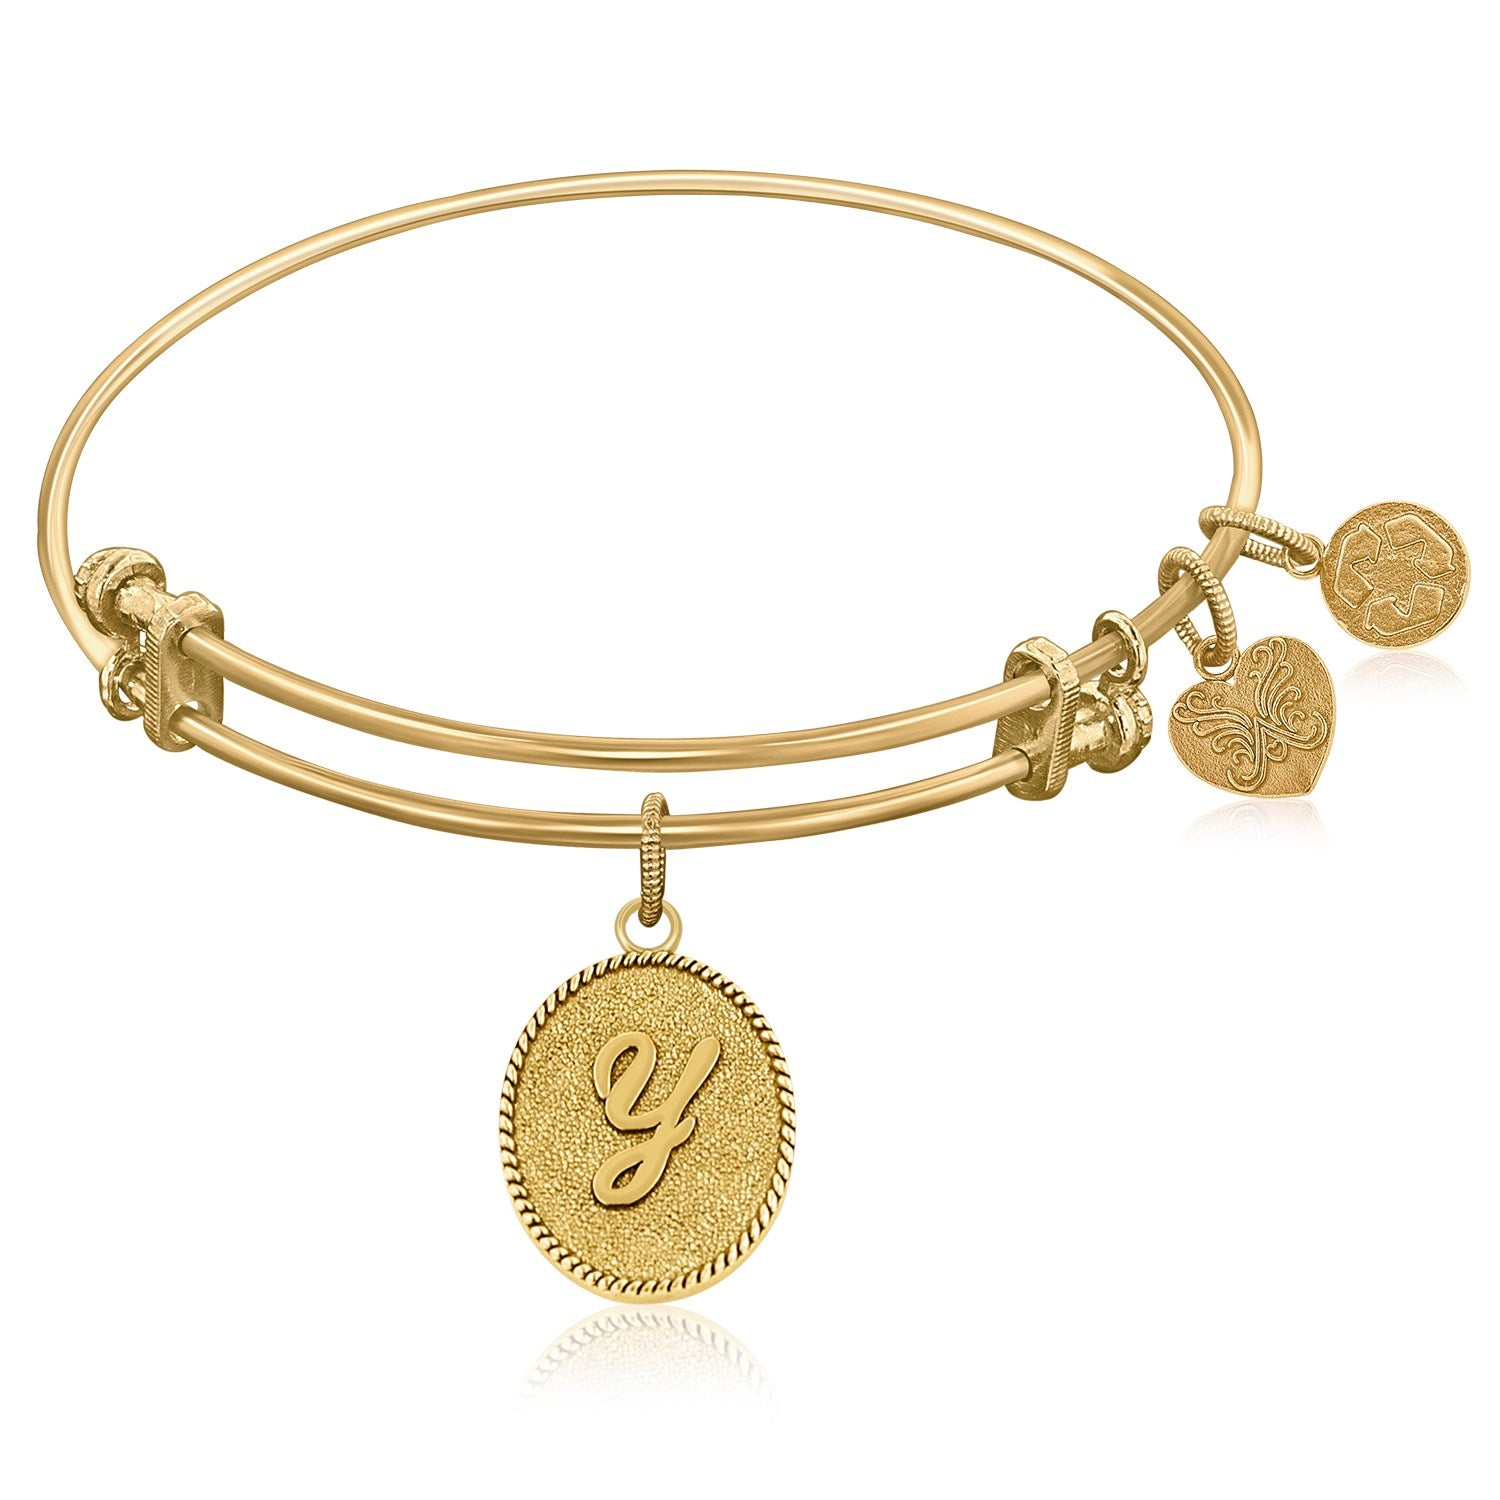 Expandable Bangle in Yellow Tone Brass with Initial Y Symbol